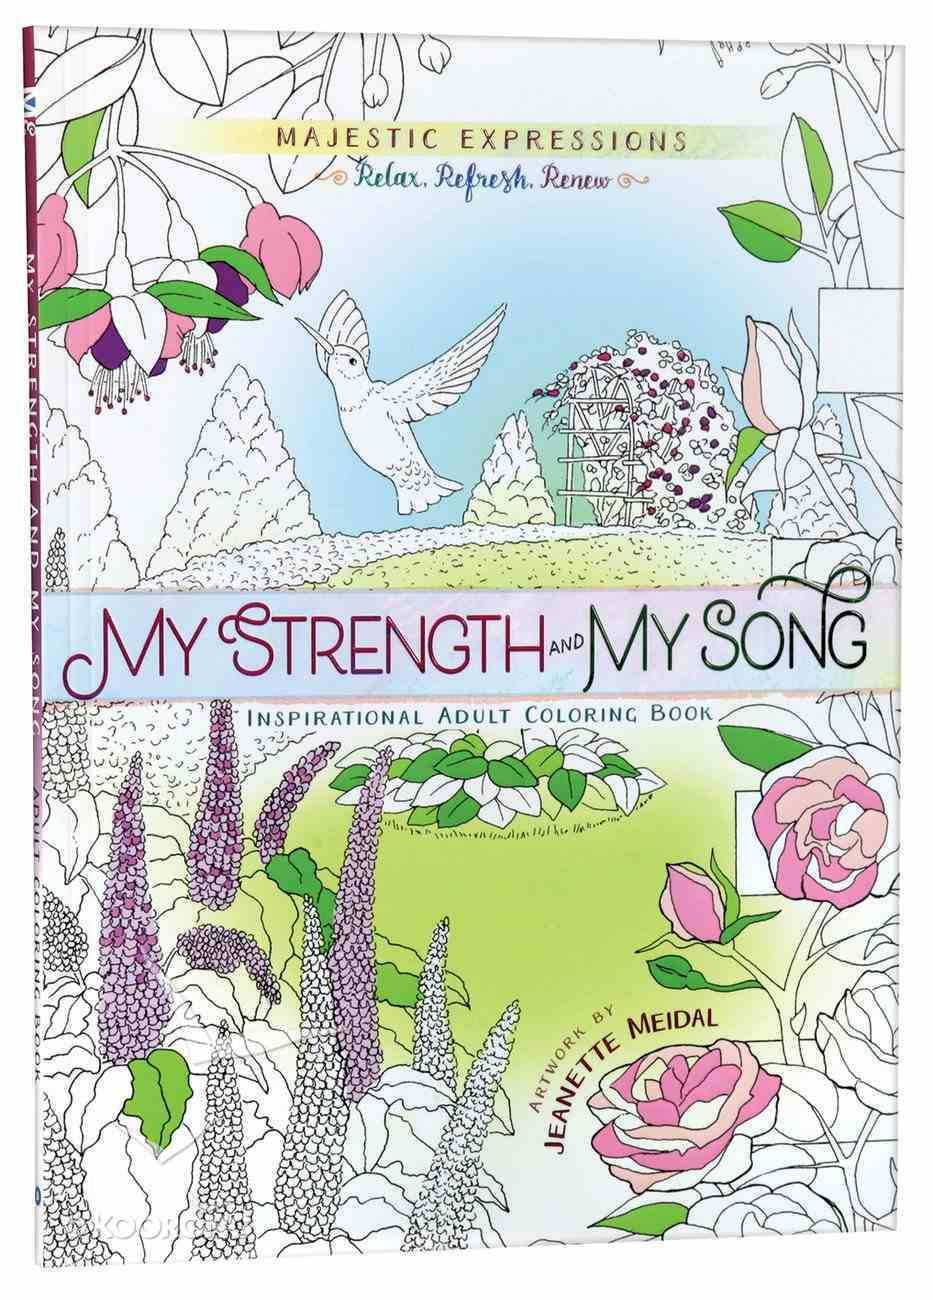 My Strength & My Song (Majestic Expressions) (Adult Coloring Books Series) Paperback